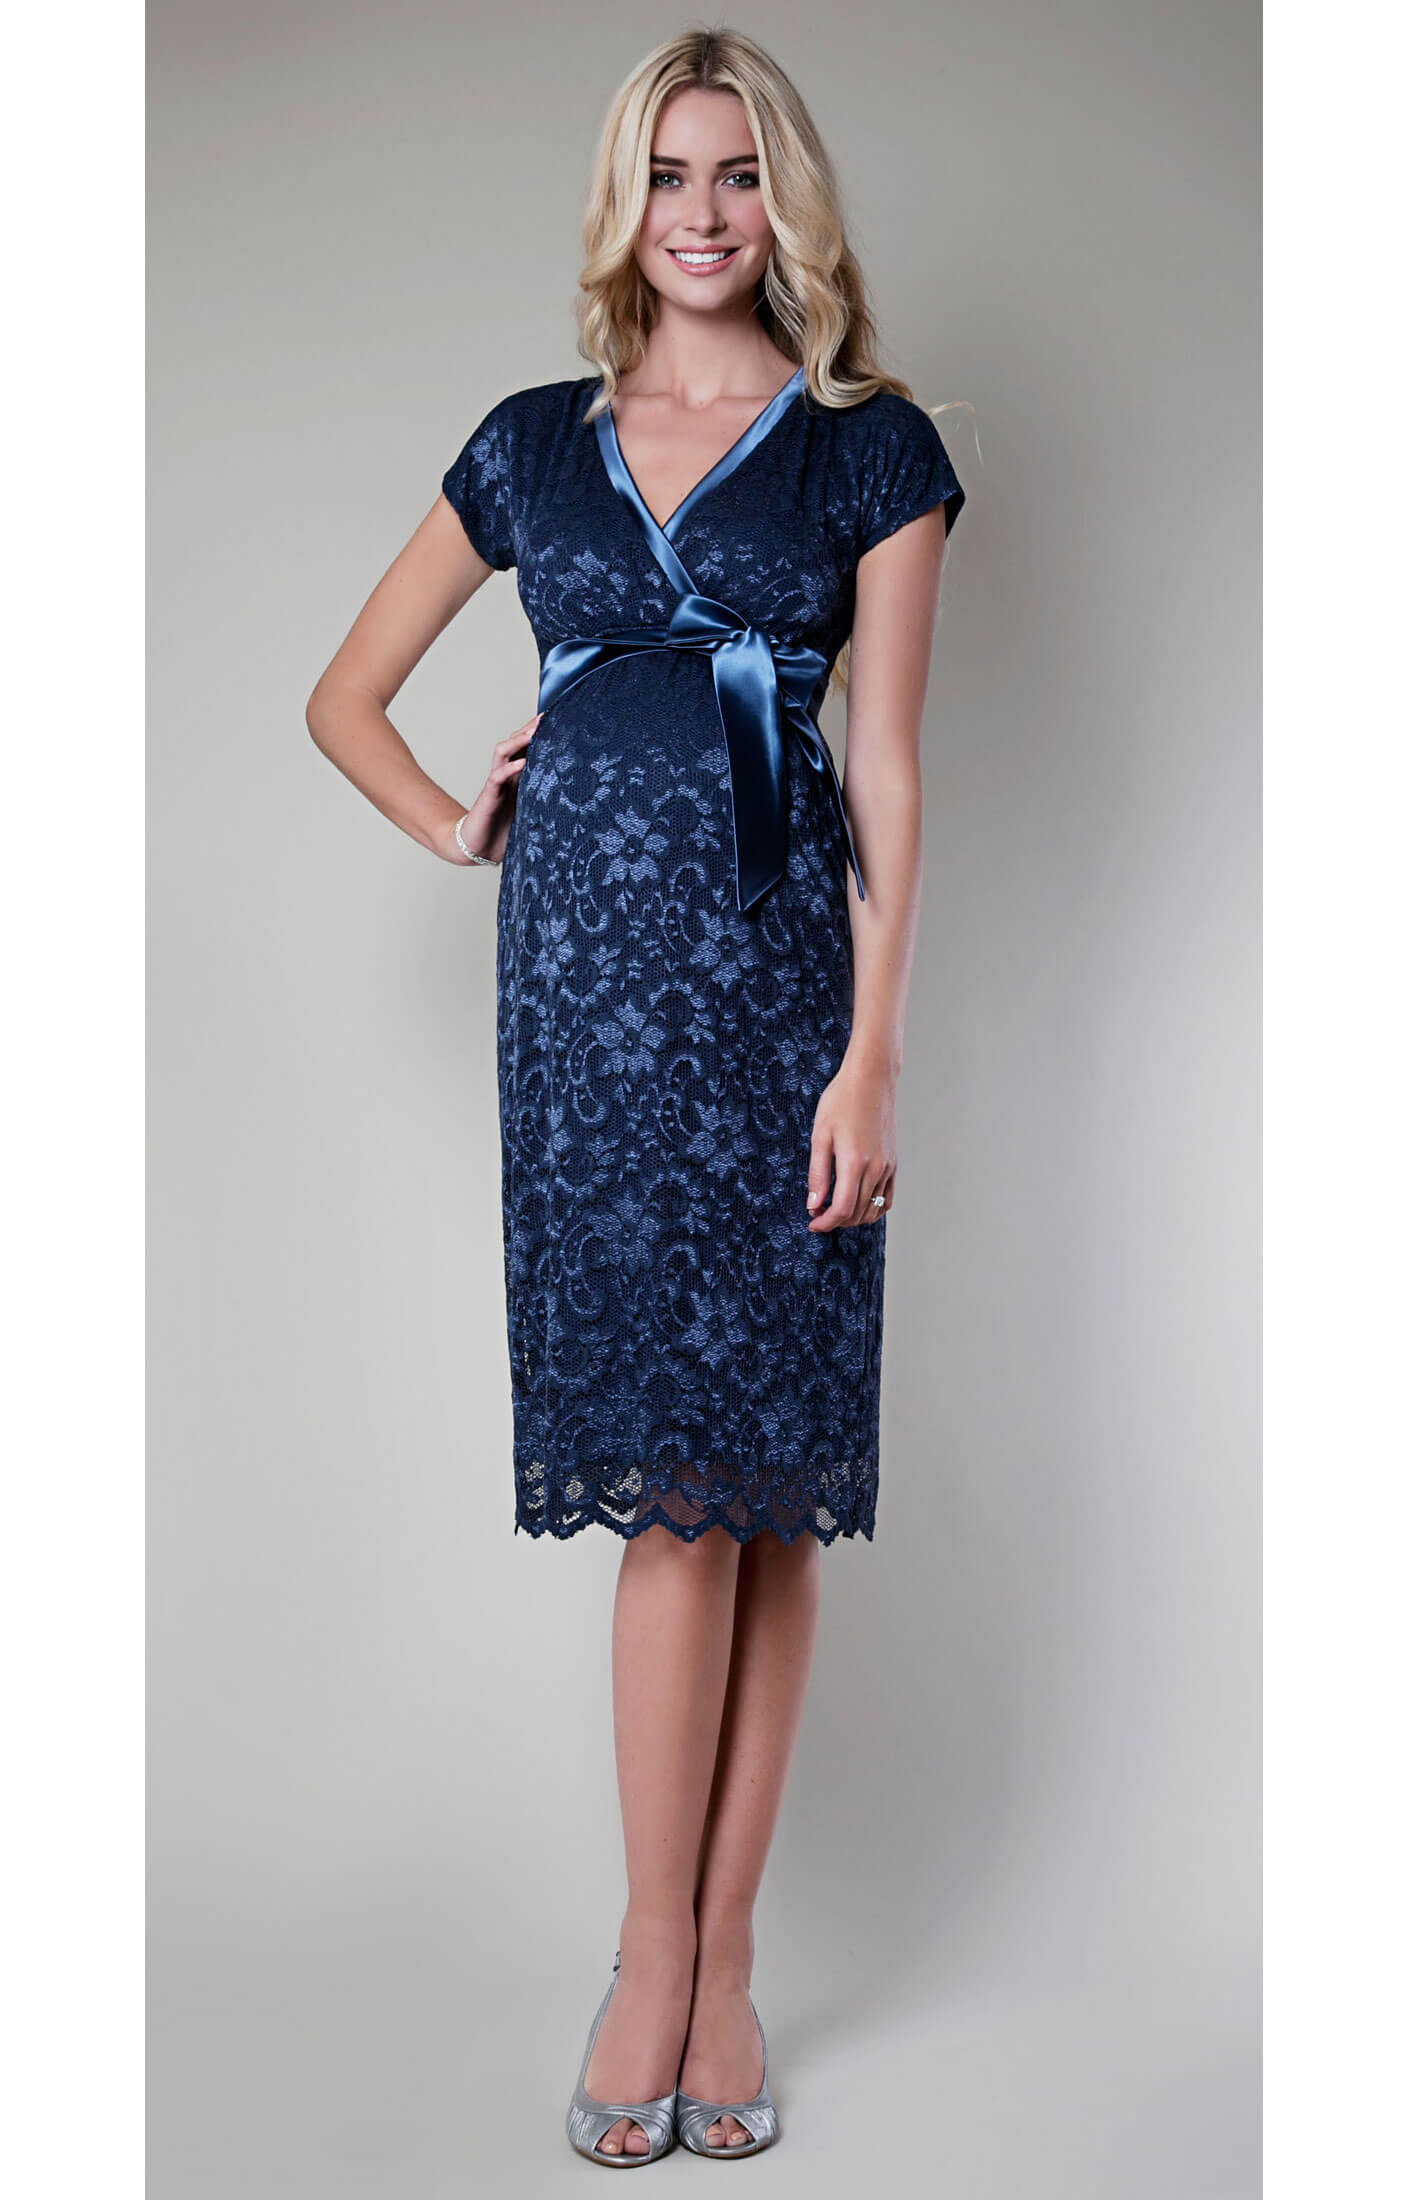 Shop from the world's largest selection and best deals for Blue Maternity Dresses. Free delivery and free returns on eBay Plus items.